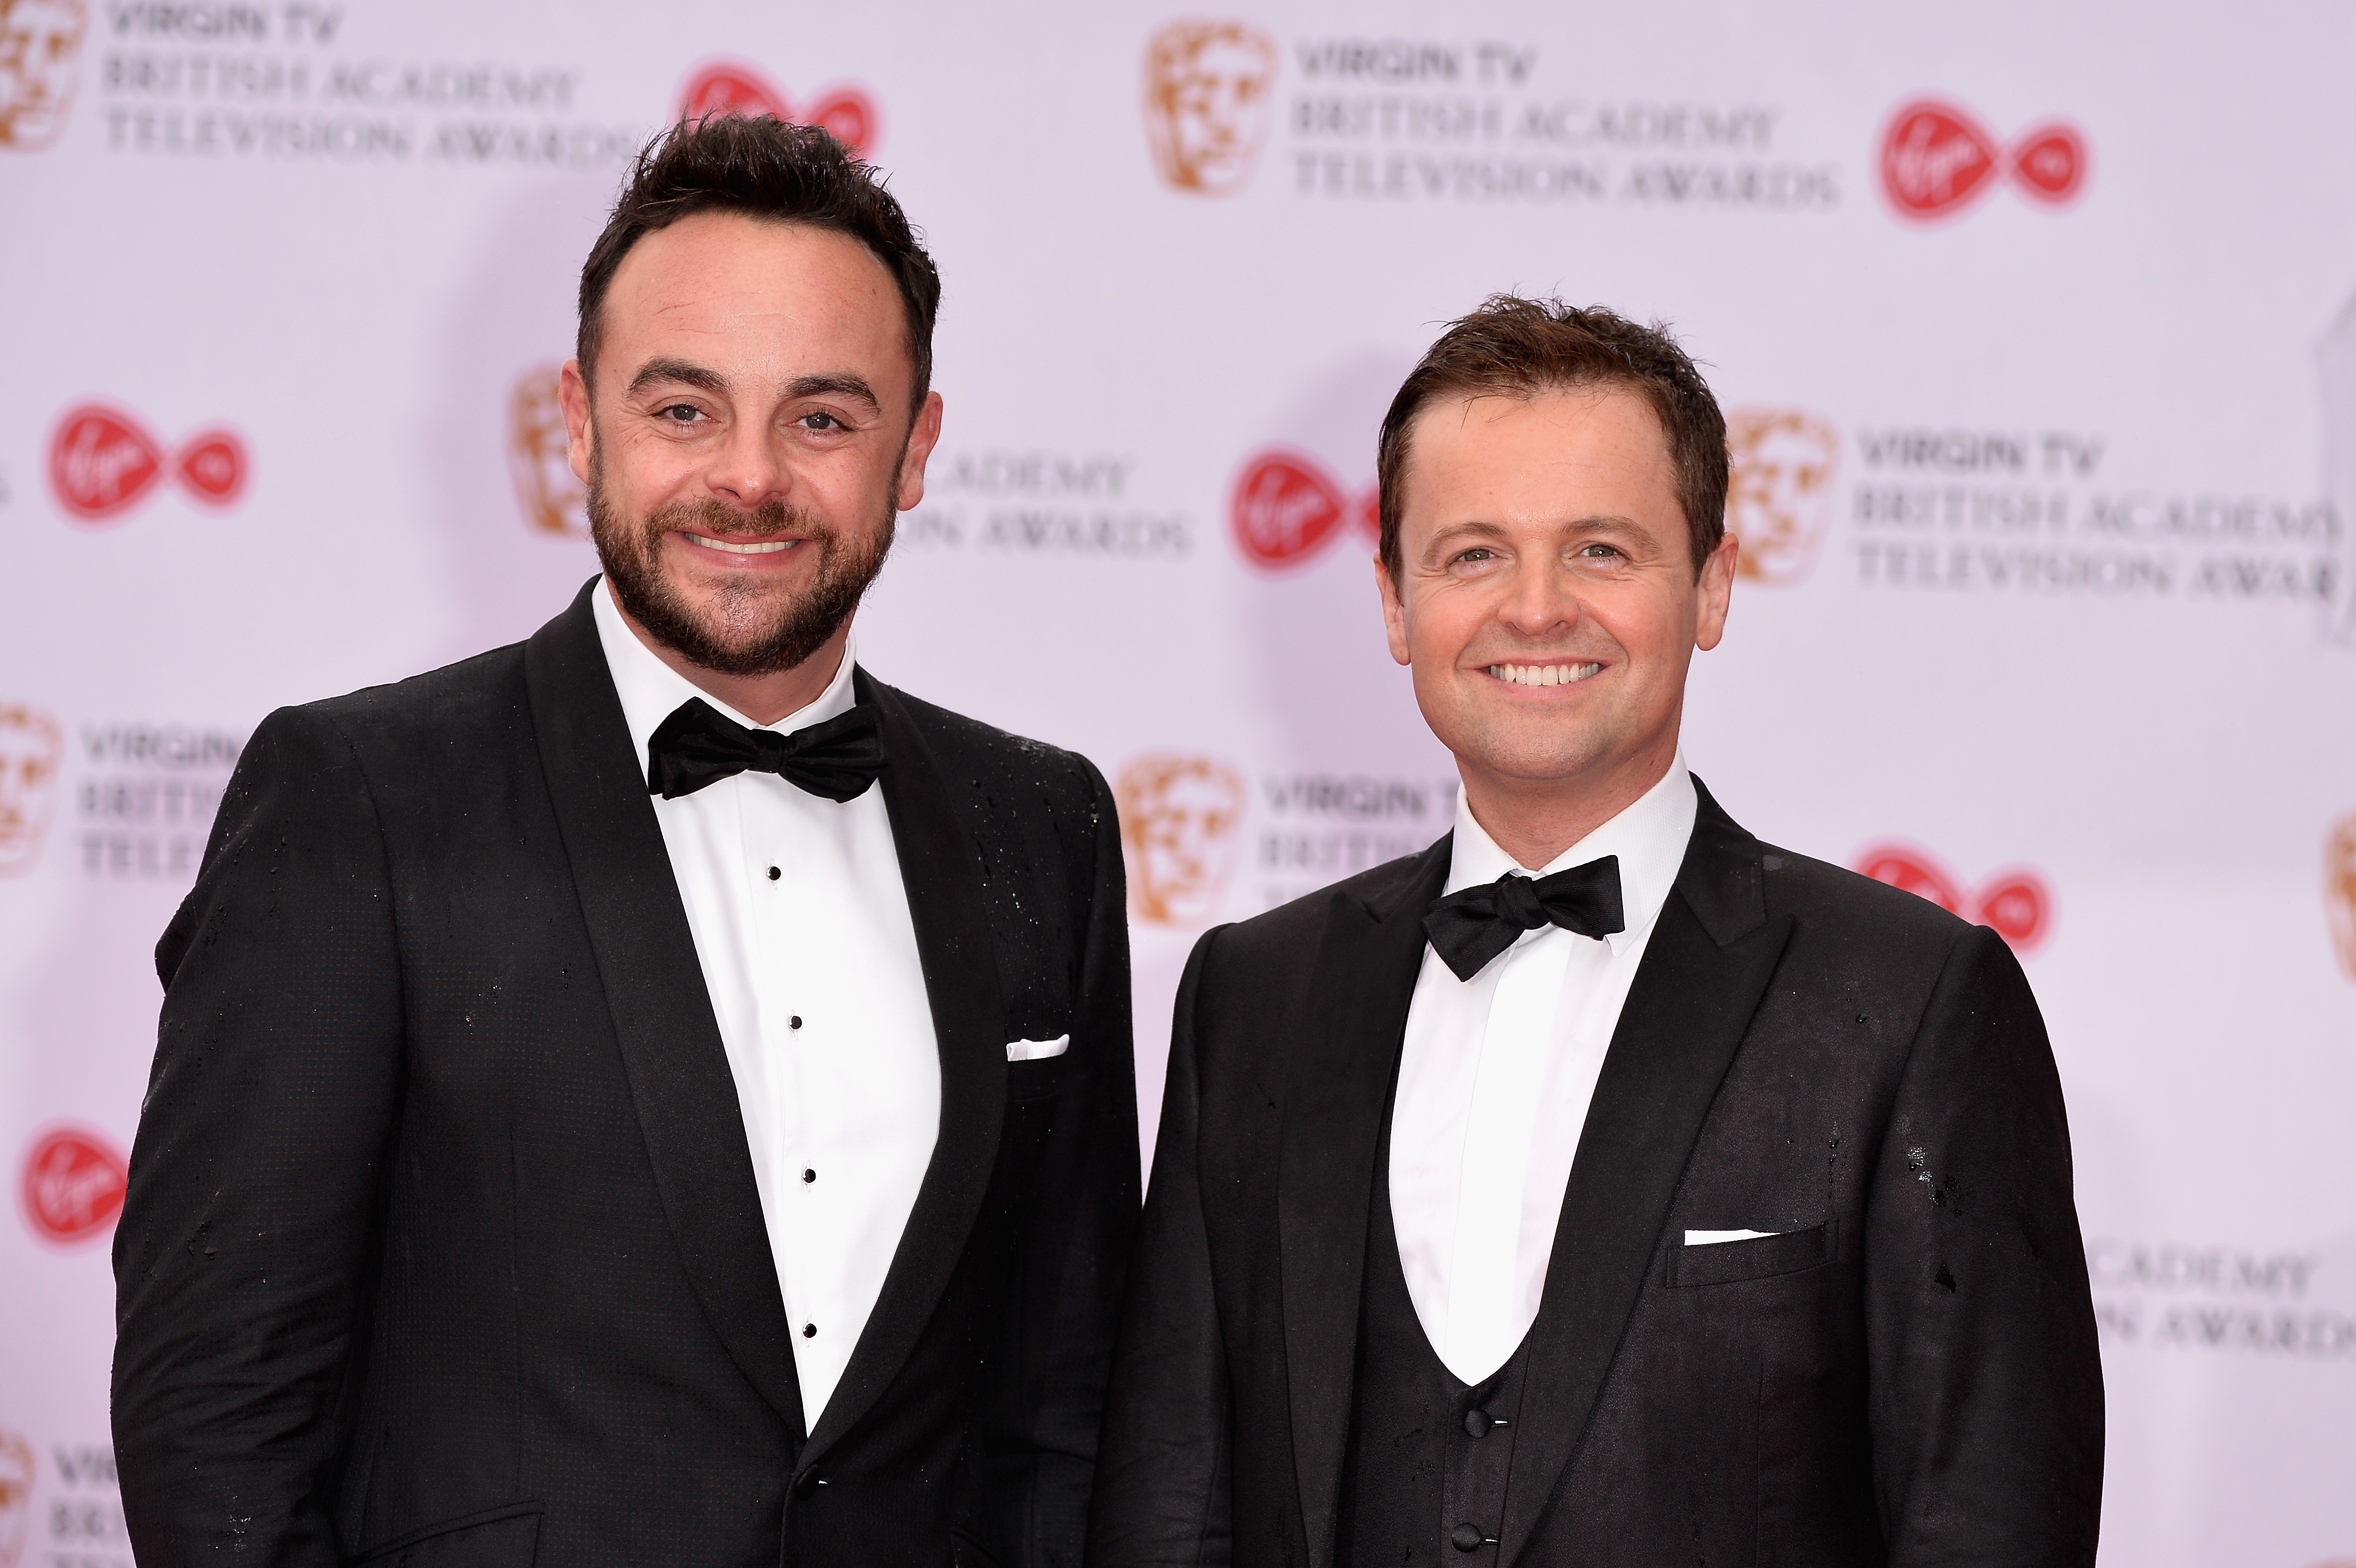 How many times have Ant and Dec won the National Television Award for best presenter?